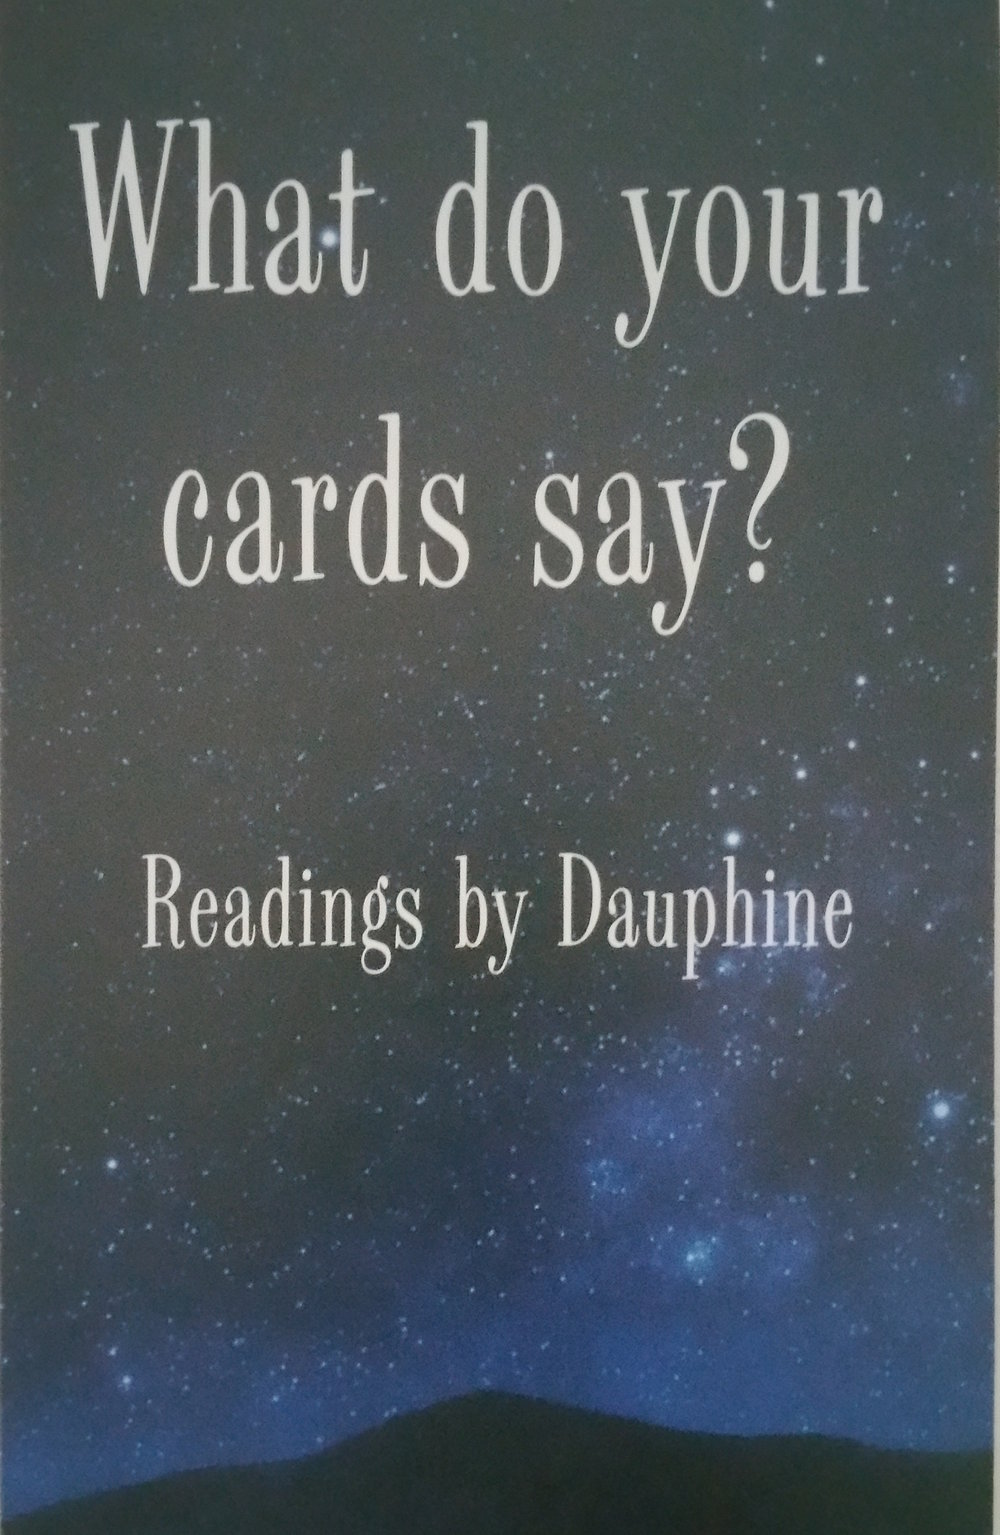 Readings by Dauphine - Booth #14Card Readings, Crystals & Stones, Smudging KitsExpo Special: *Free crystal with card reading*